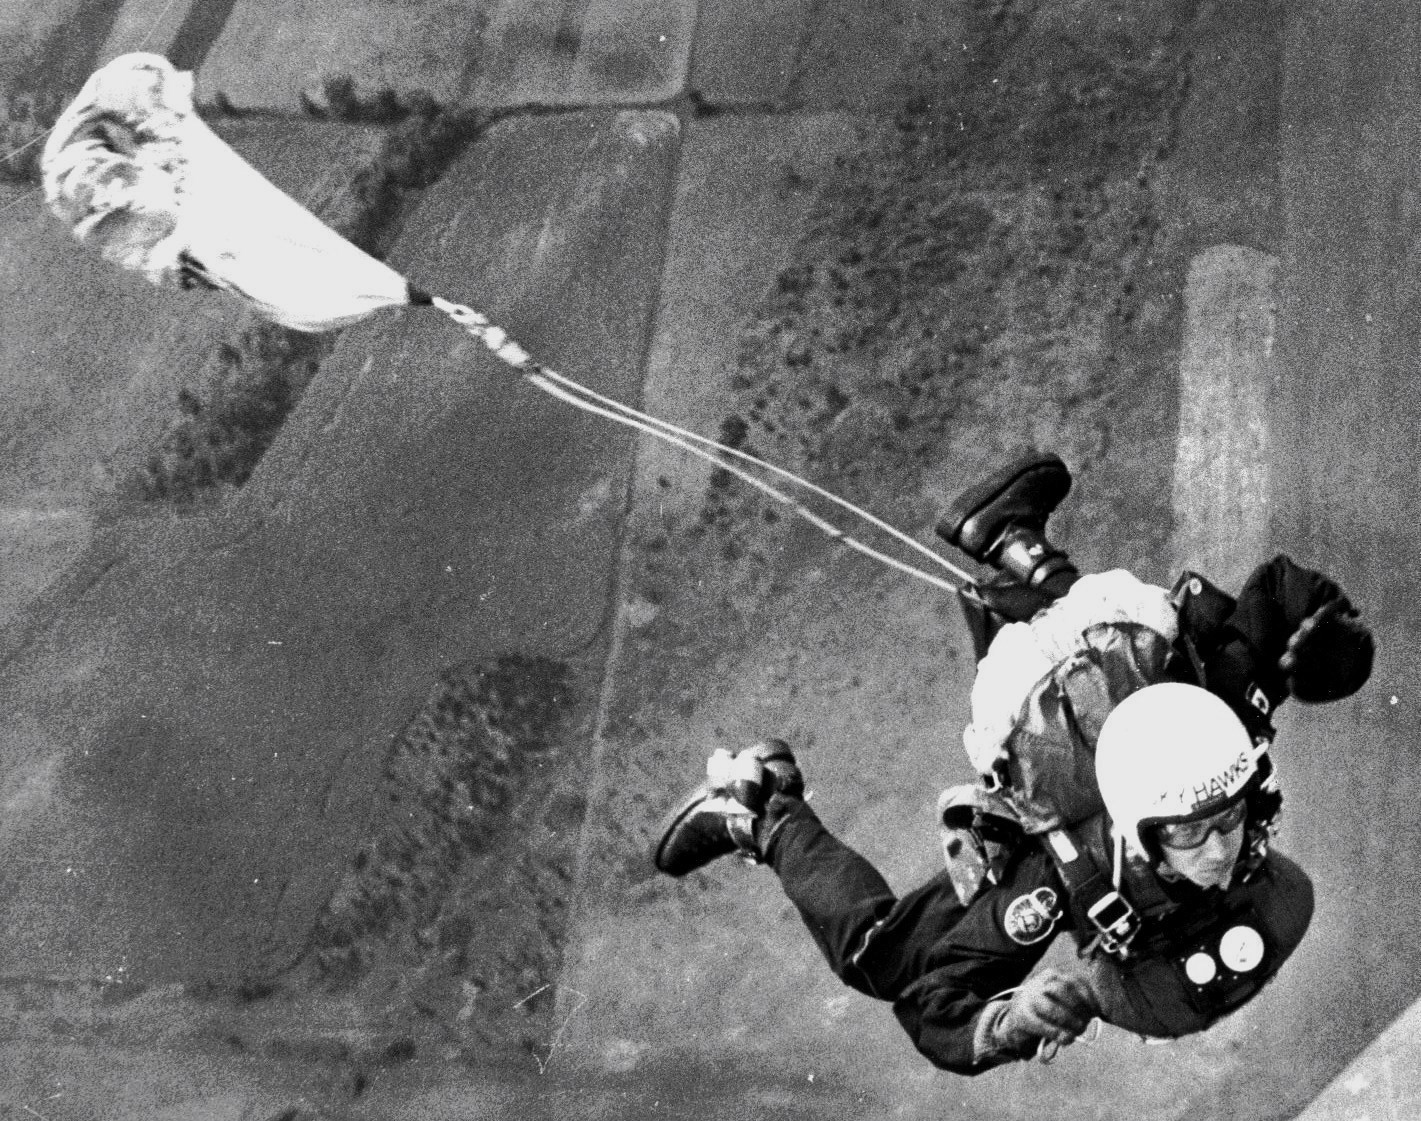 Canadian Forces Parachute Team, the Skyhawks, Author exiting a de Havilland Single Otter over Mountainview, Ontario, Aug 1977.